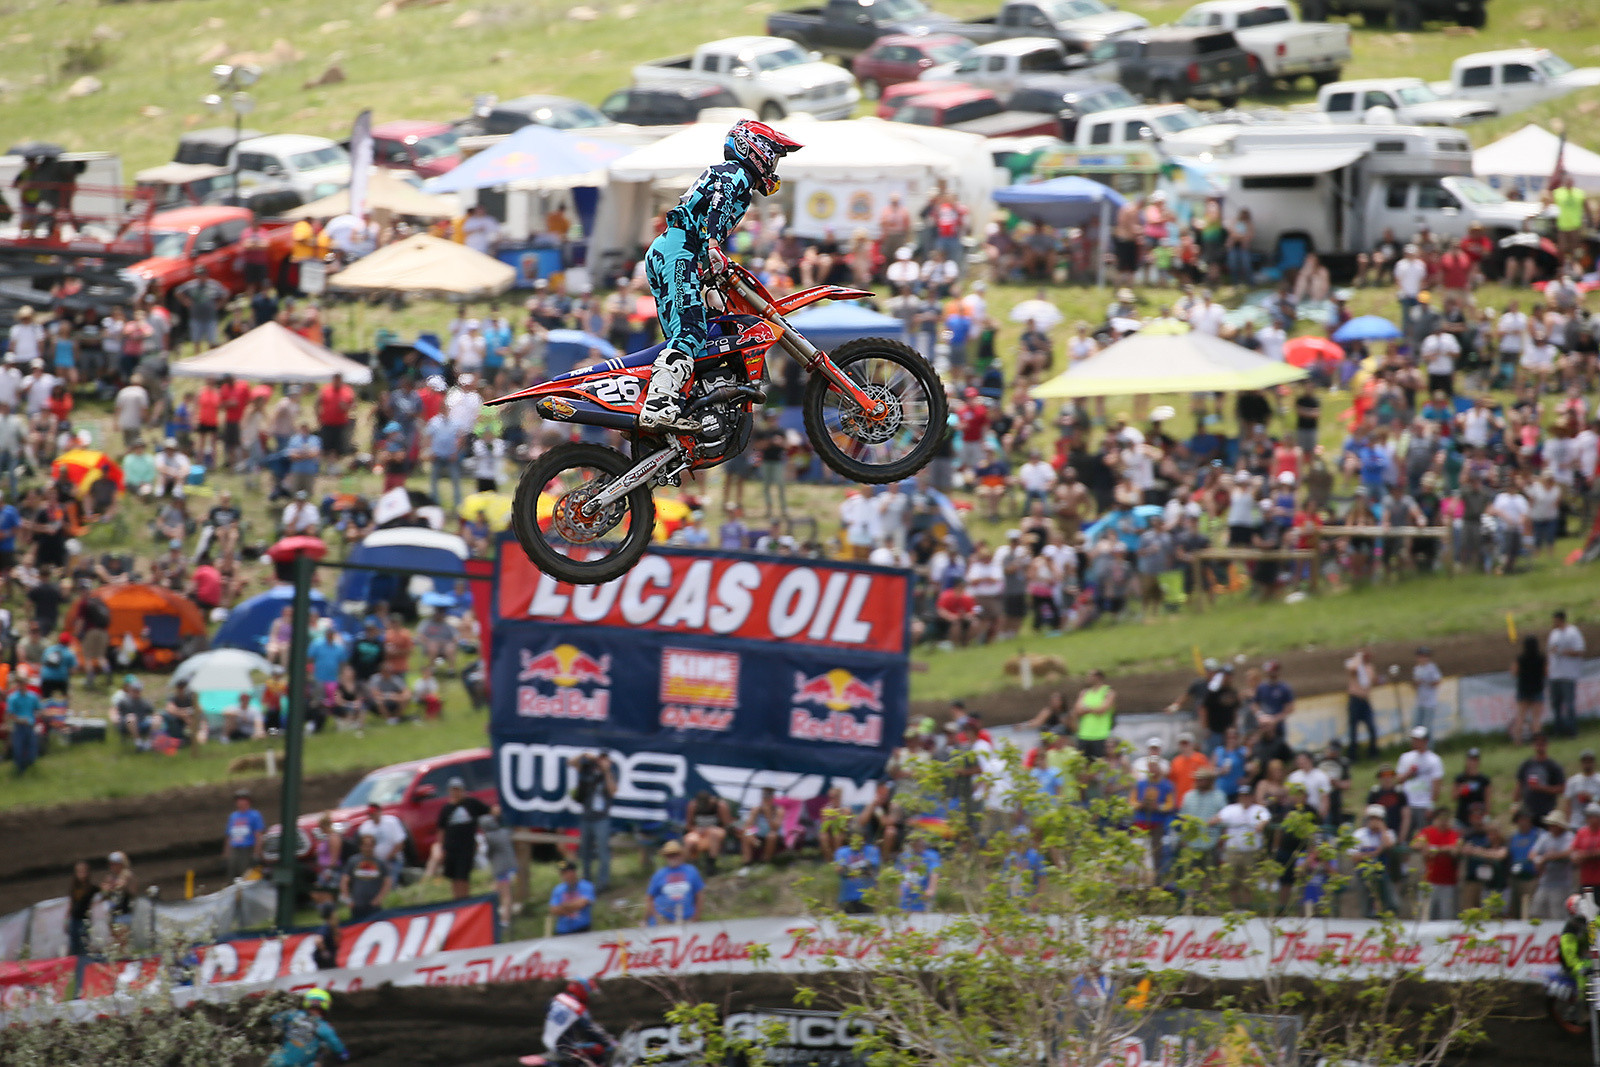 Alex Martin went wire-to-wire in the first 250 moto, scoring a win. He backed it up with a fourth the second time around.